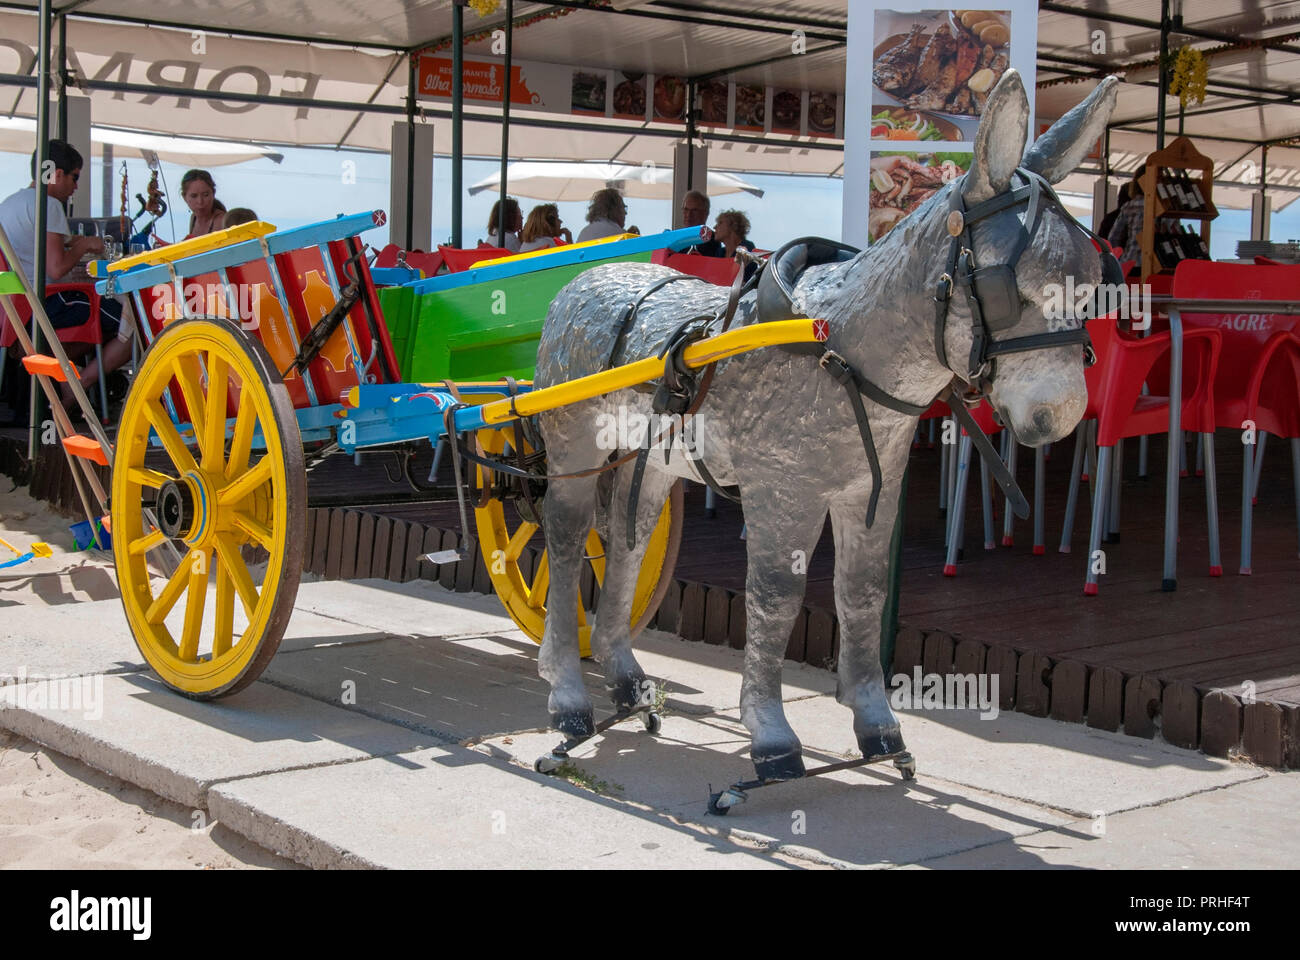 Little Grey Donkey and Colourful Cart Advertising Model novelty fibreglass model of little grey portuguese donkey standing between the shafts of red g Stock Photo